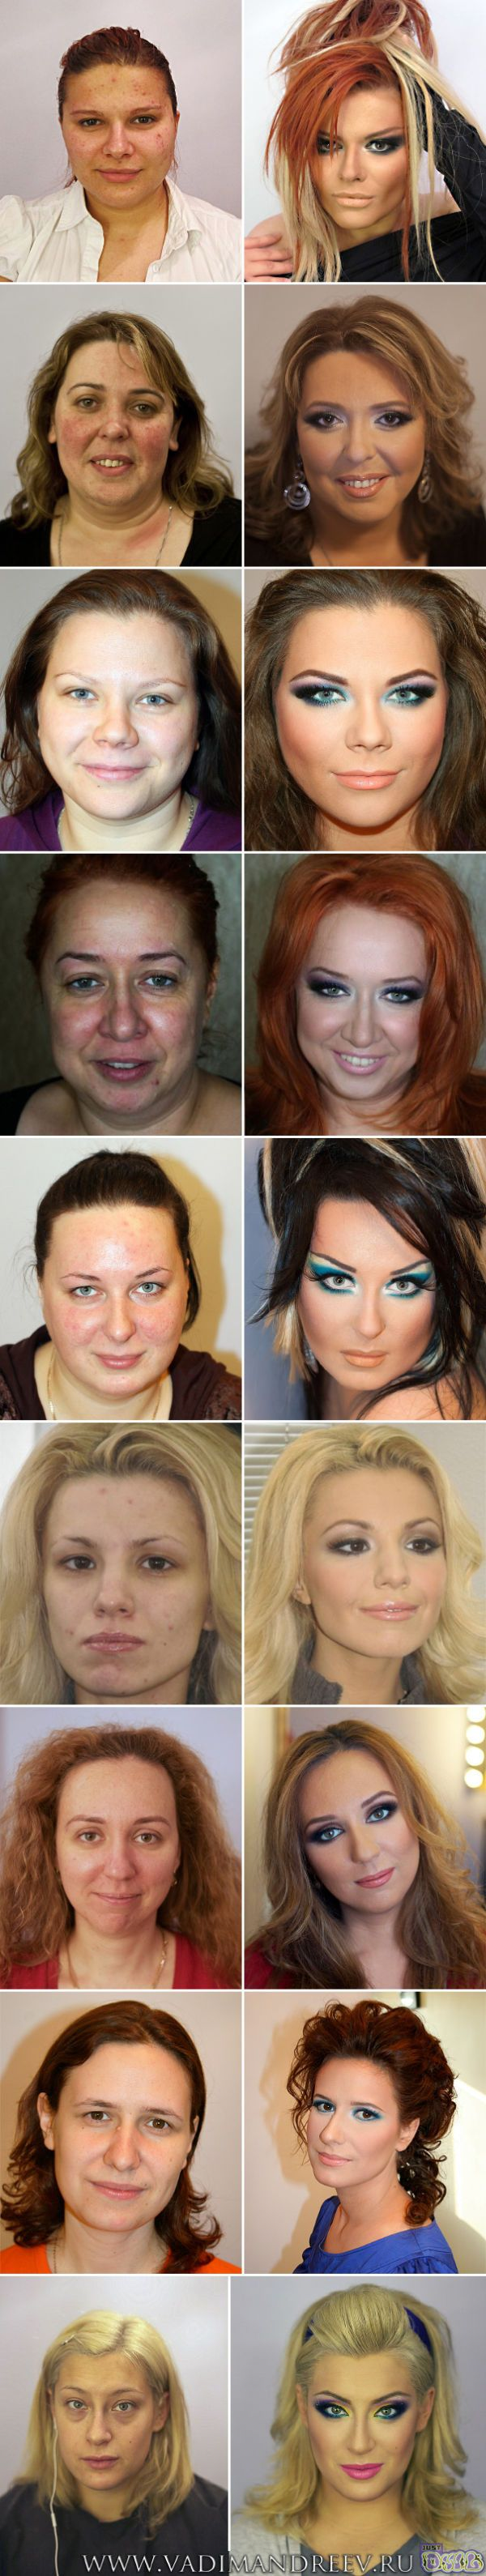 Before and after professional #makeup